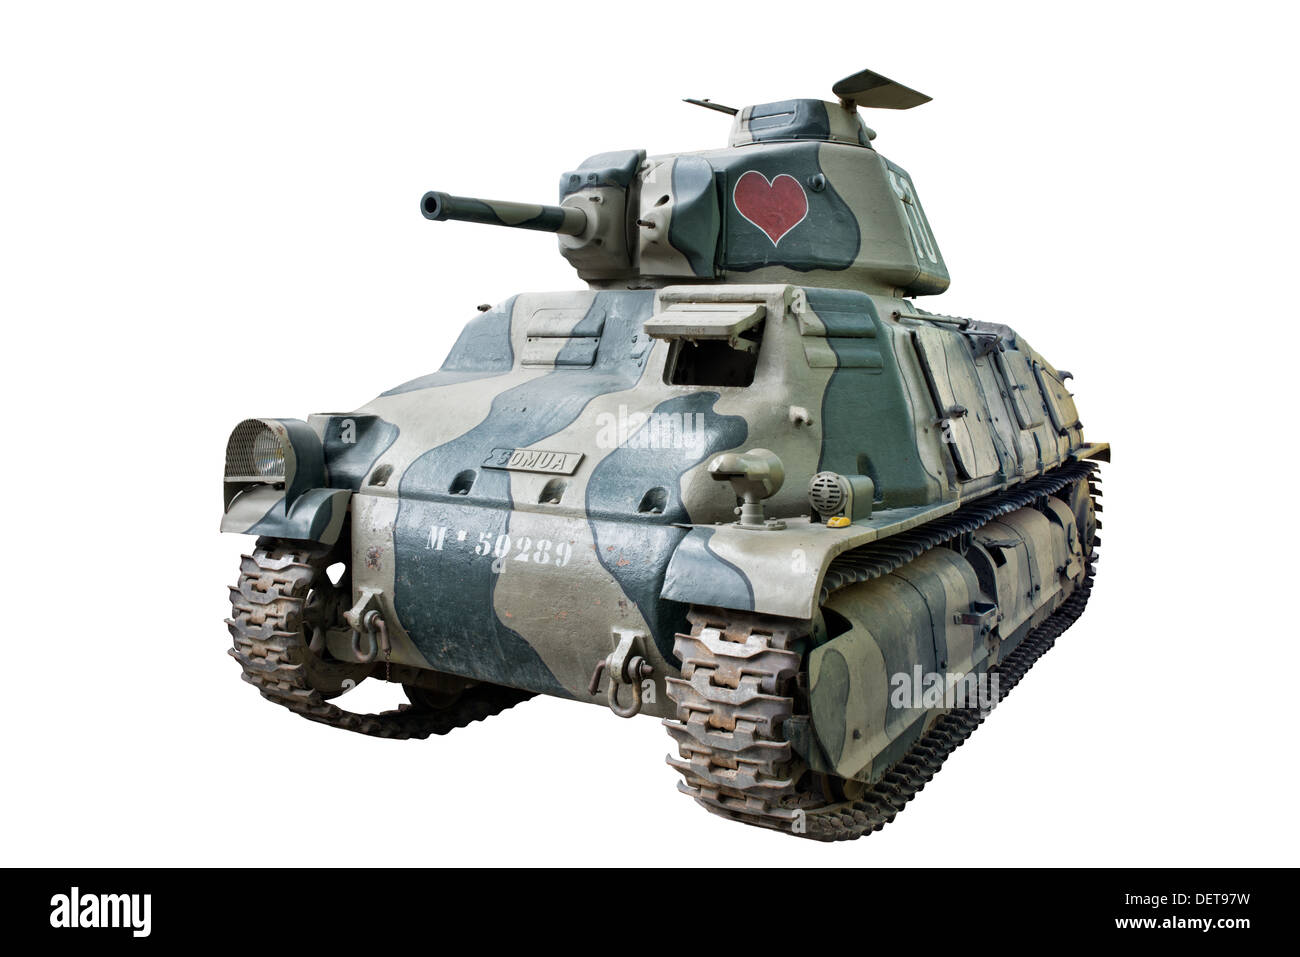 A cut out of a Souma S35 tank used by French cavalry forces at the outbreak of WW2 - Stock Image